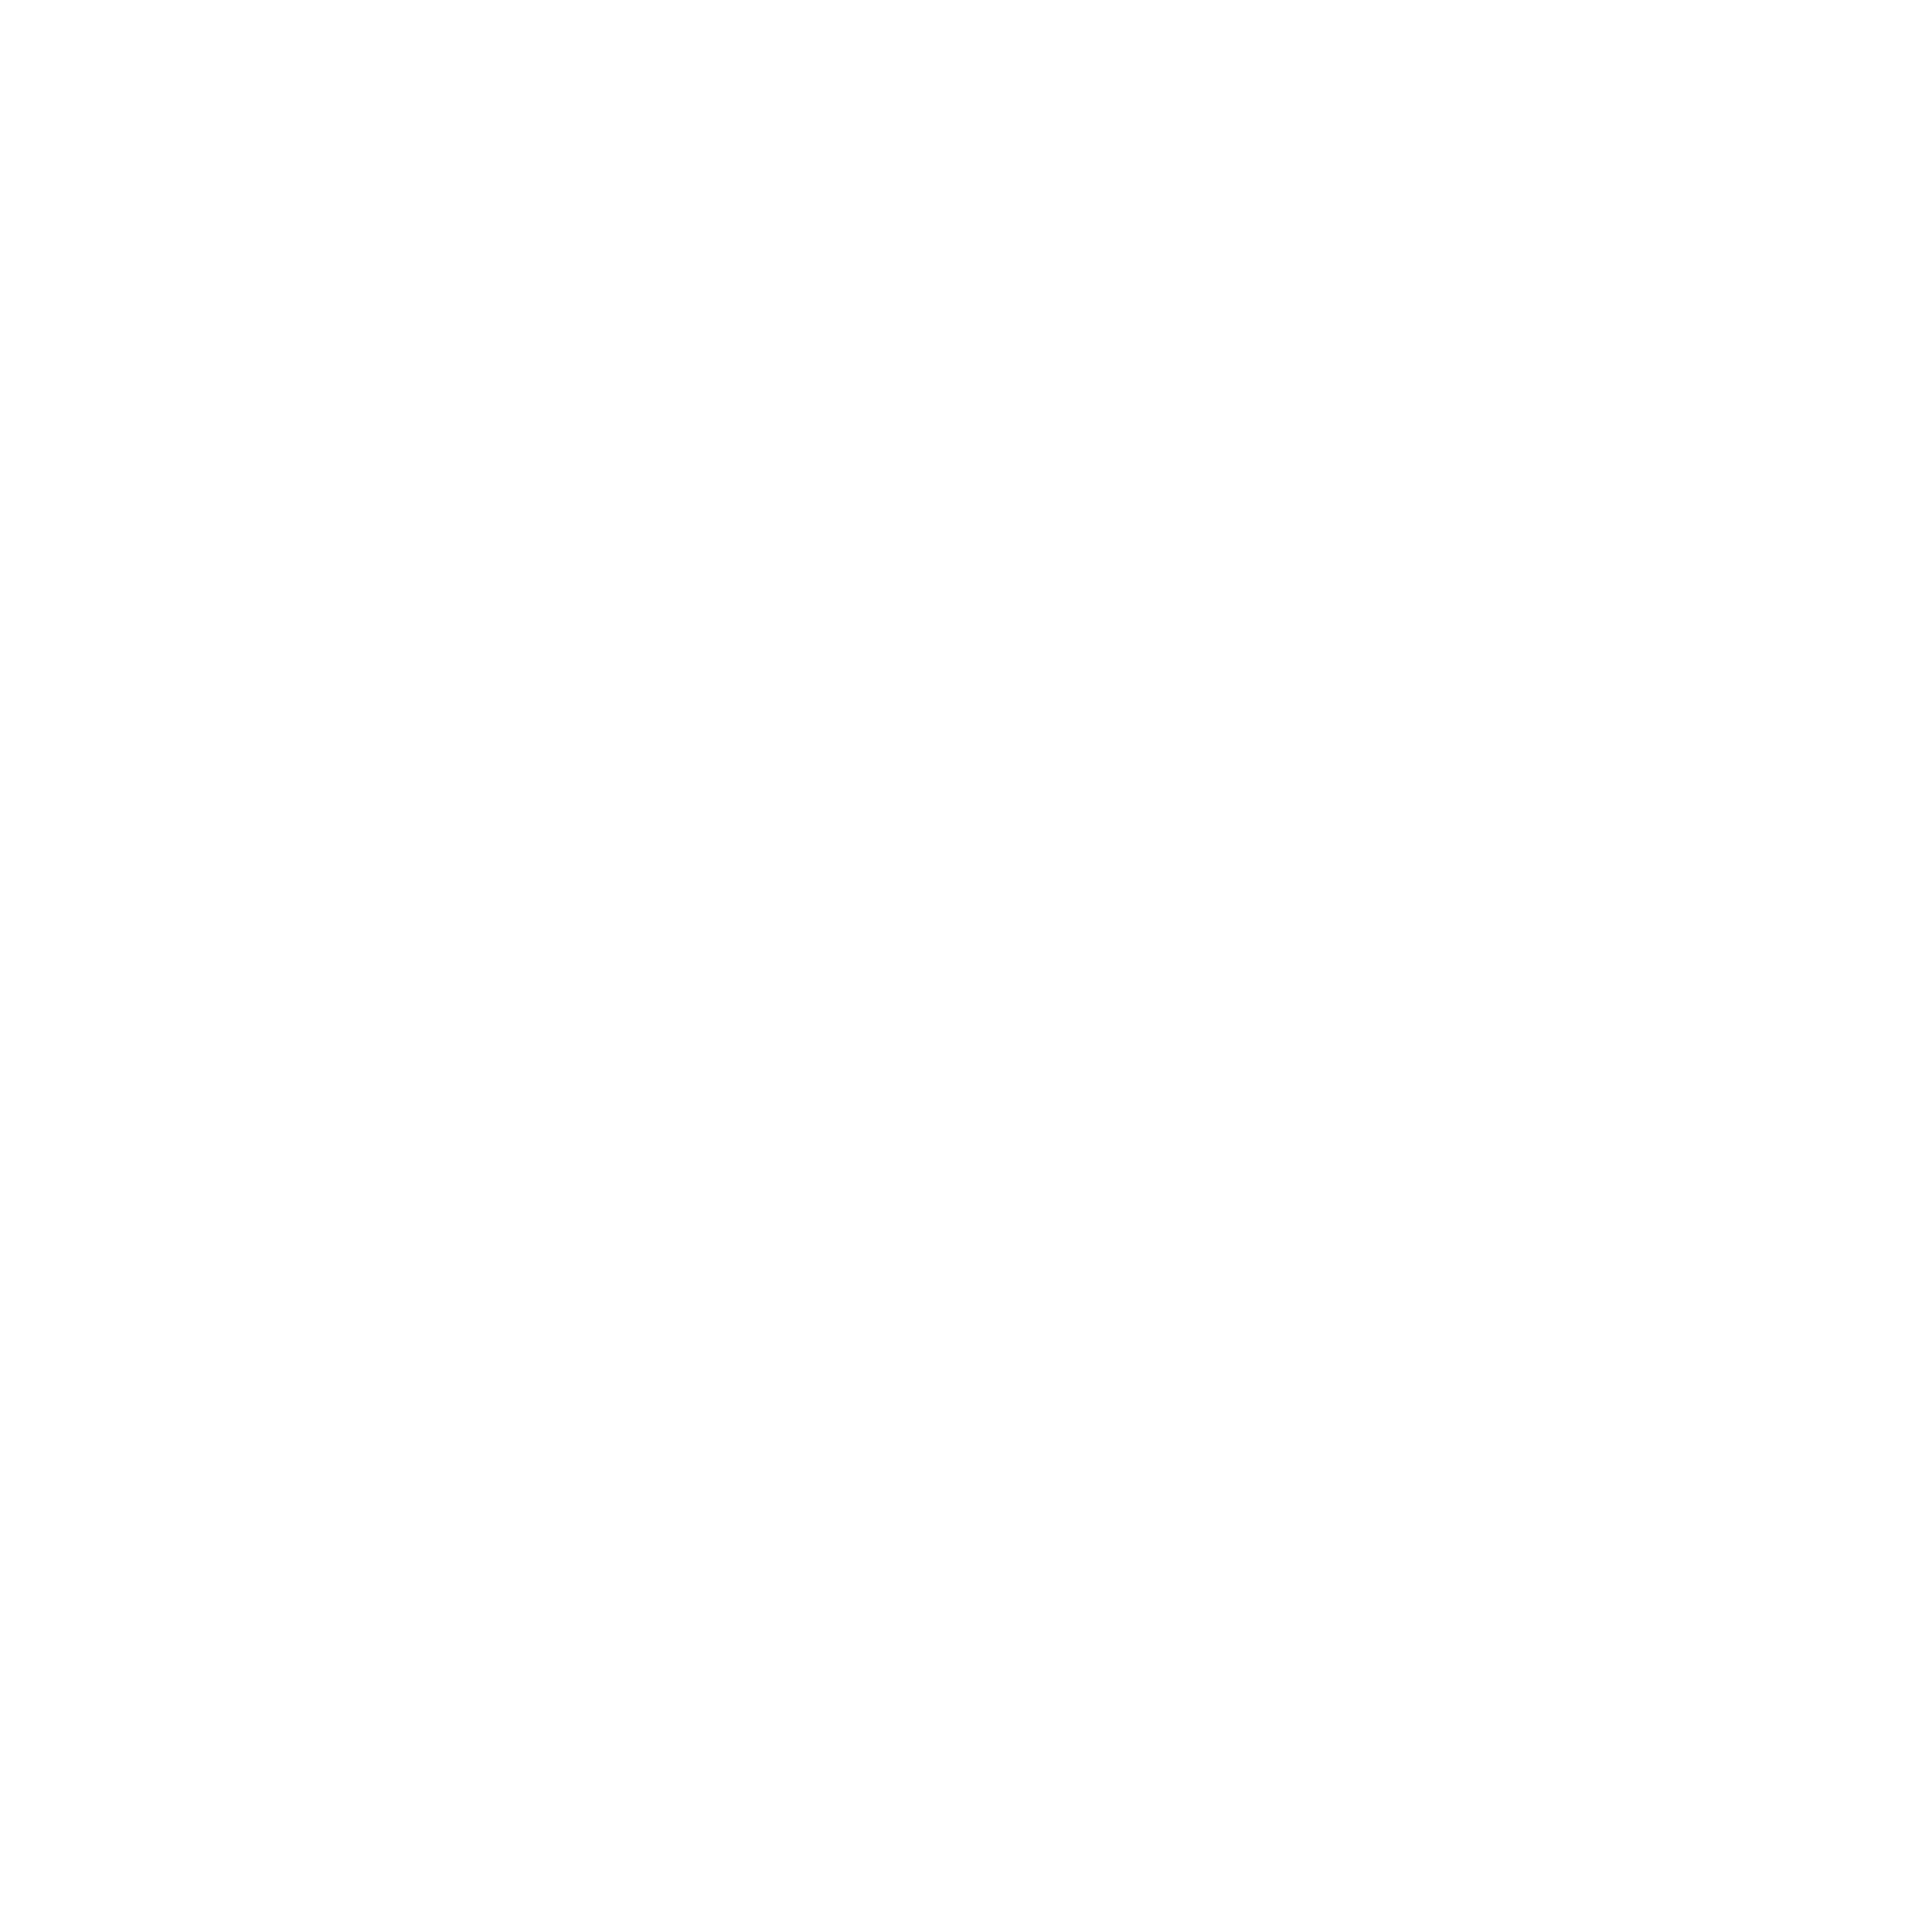 The Antler Inc